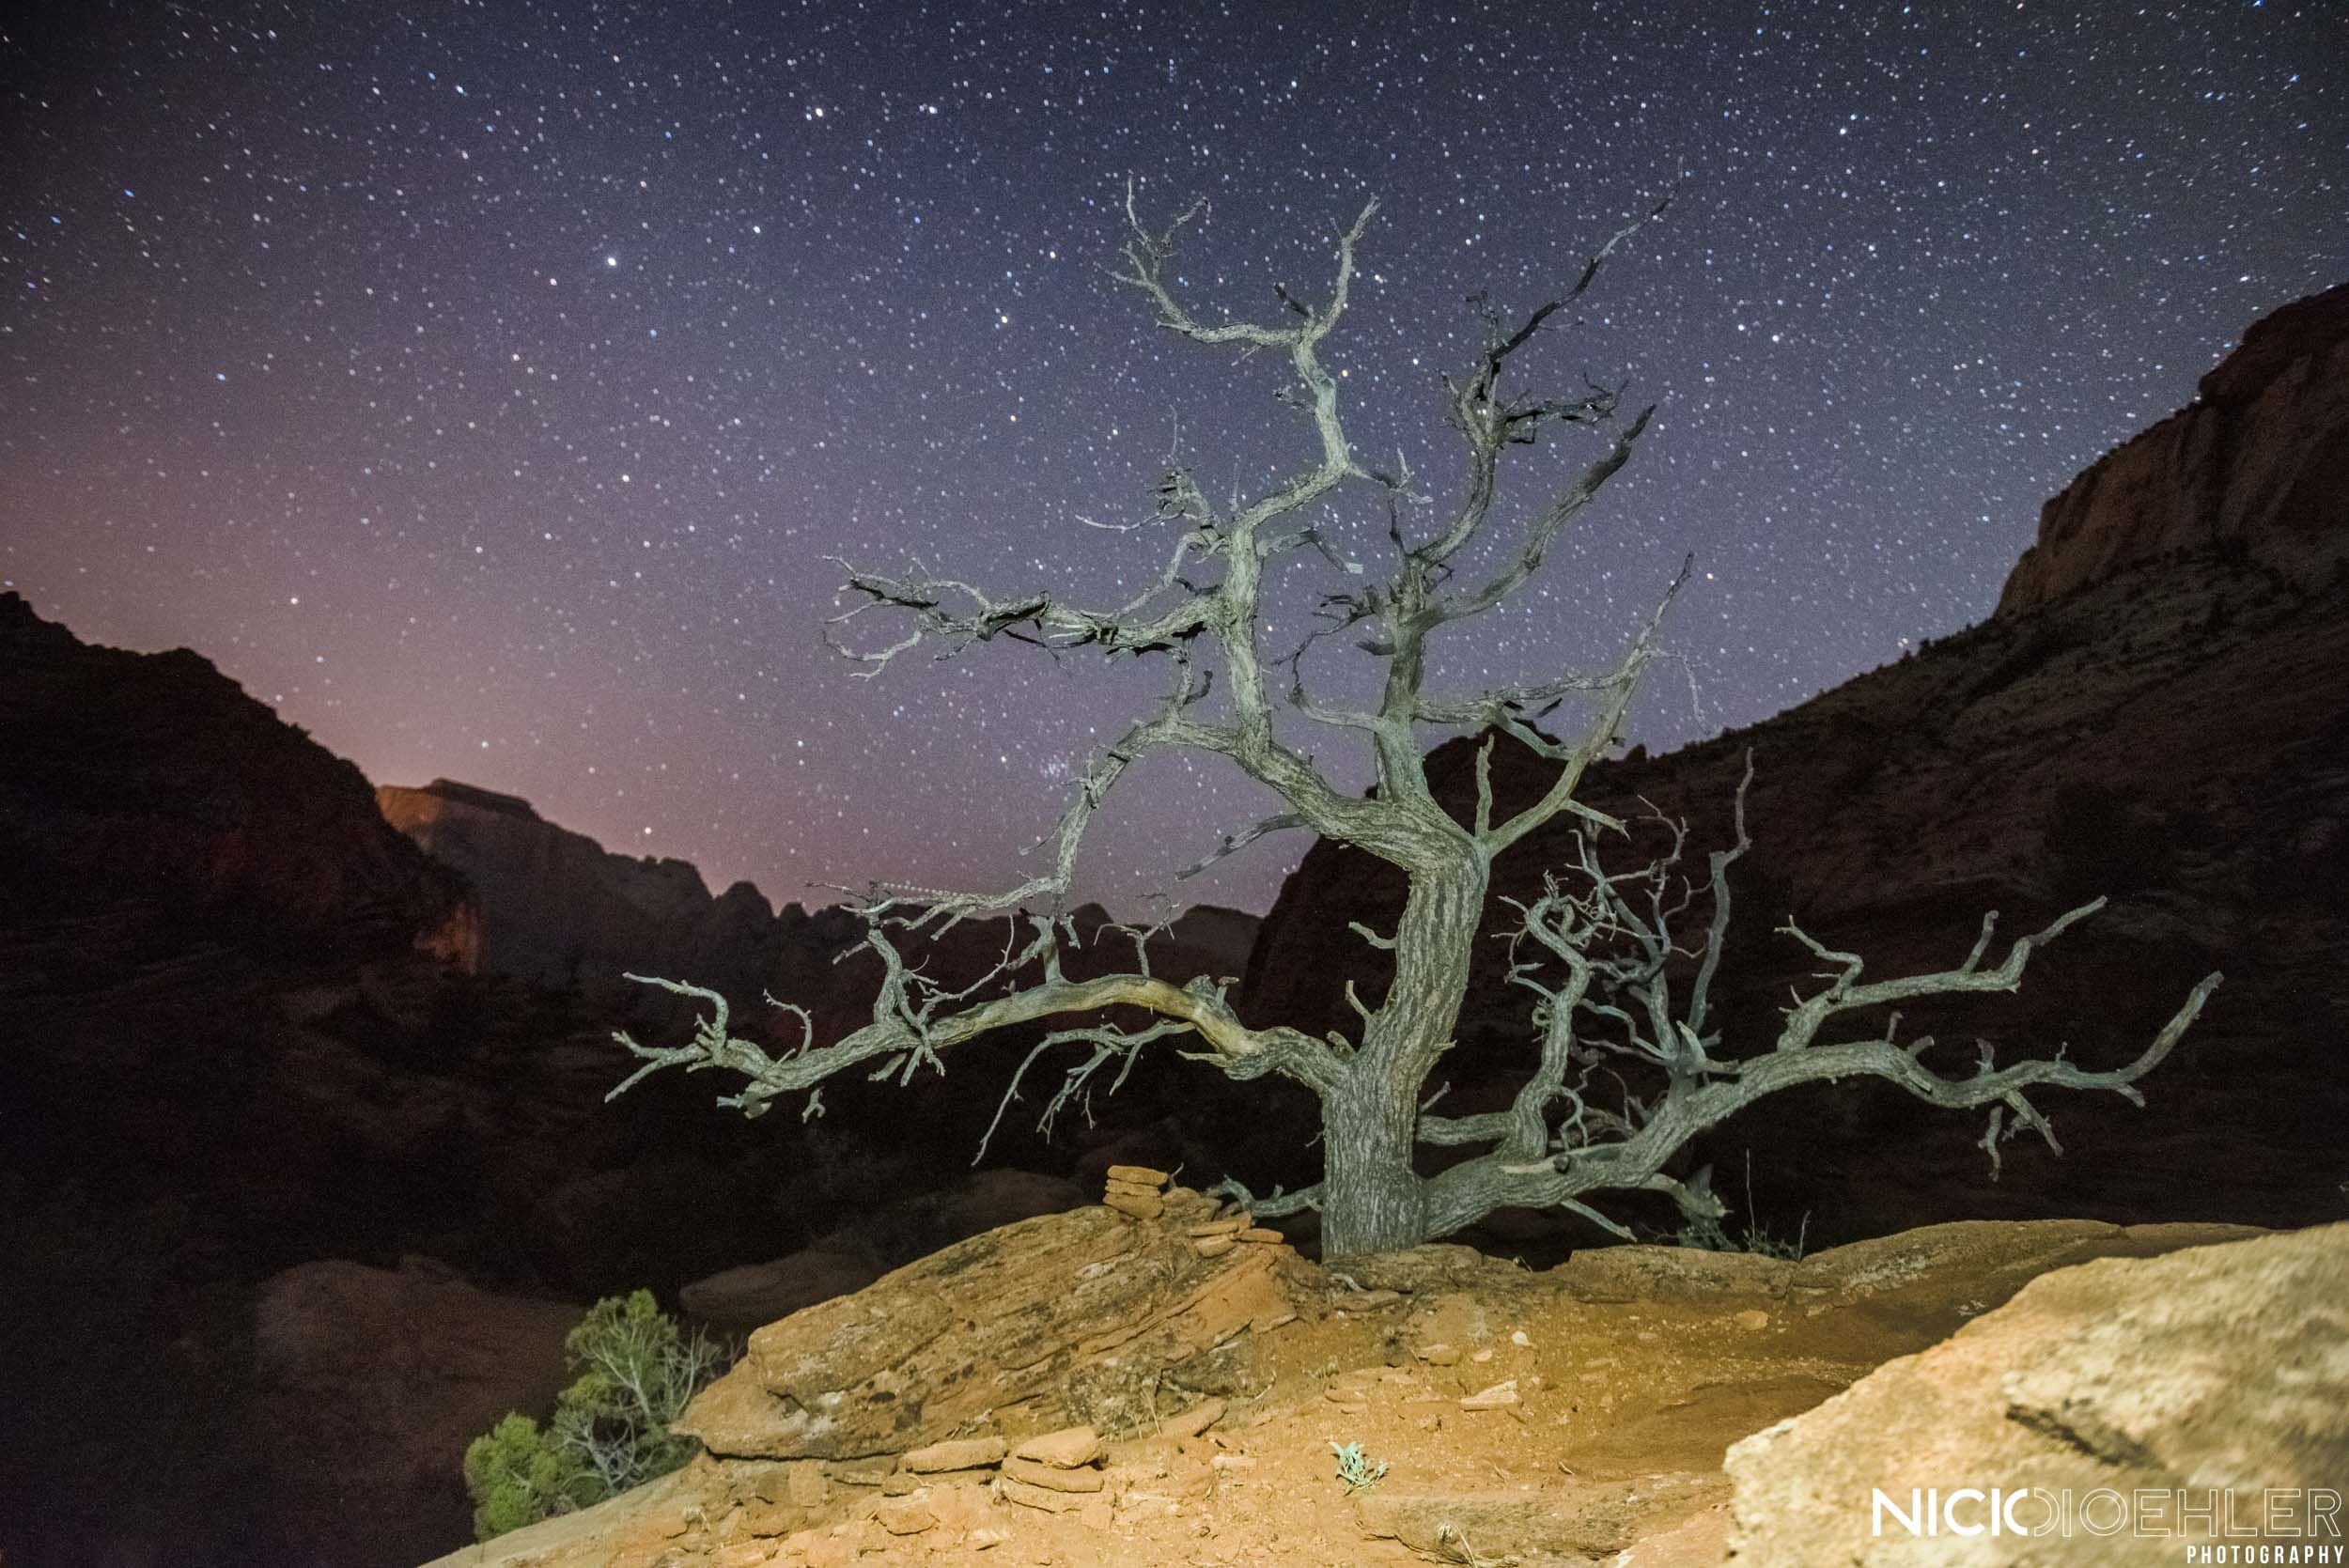 Zion National Park: Starry night over a crazy tree.